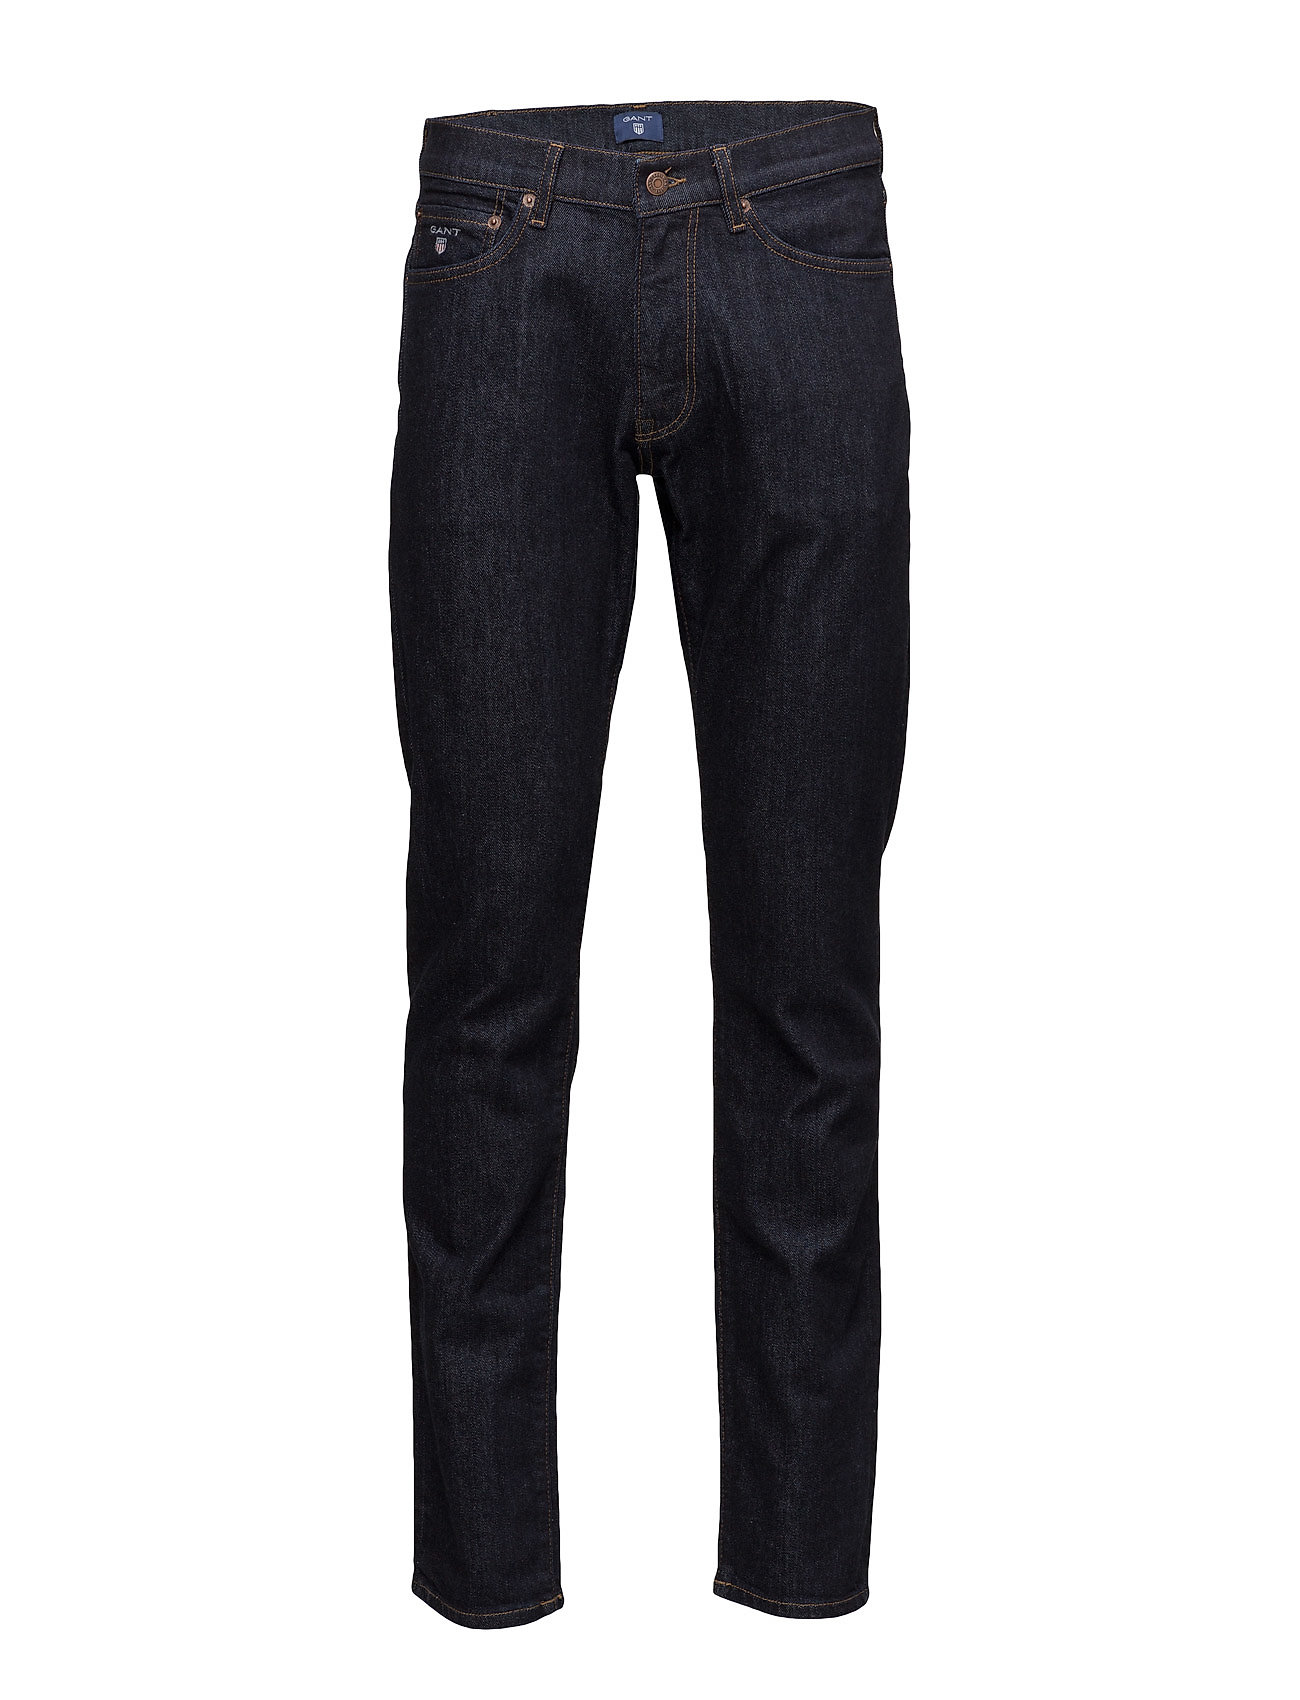 Gant SLIM GANT JEANS - DARK BLUE